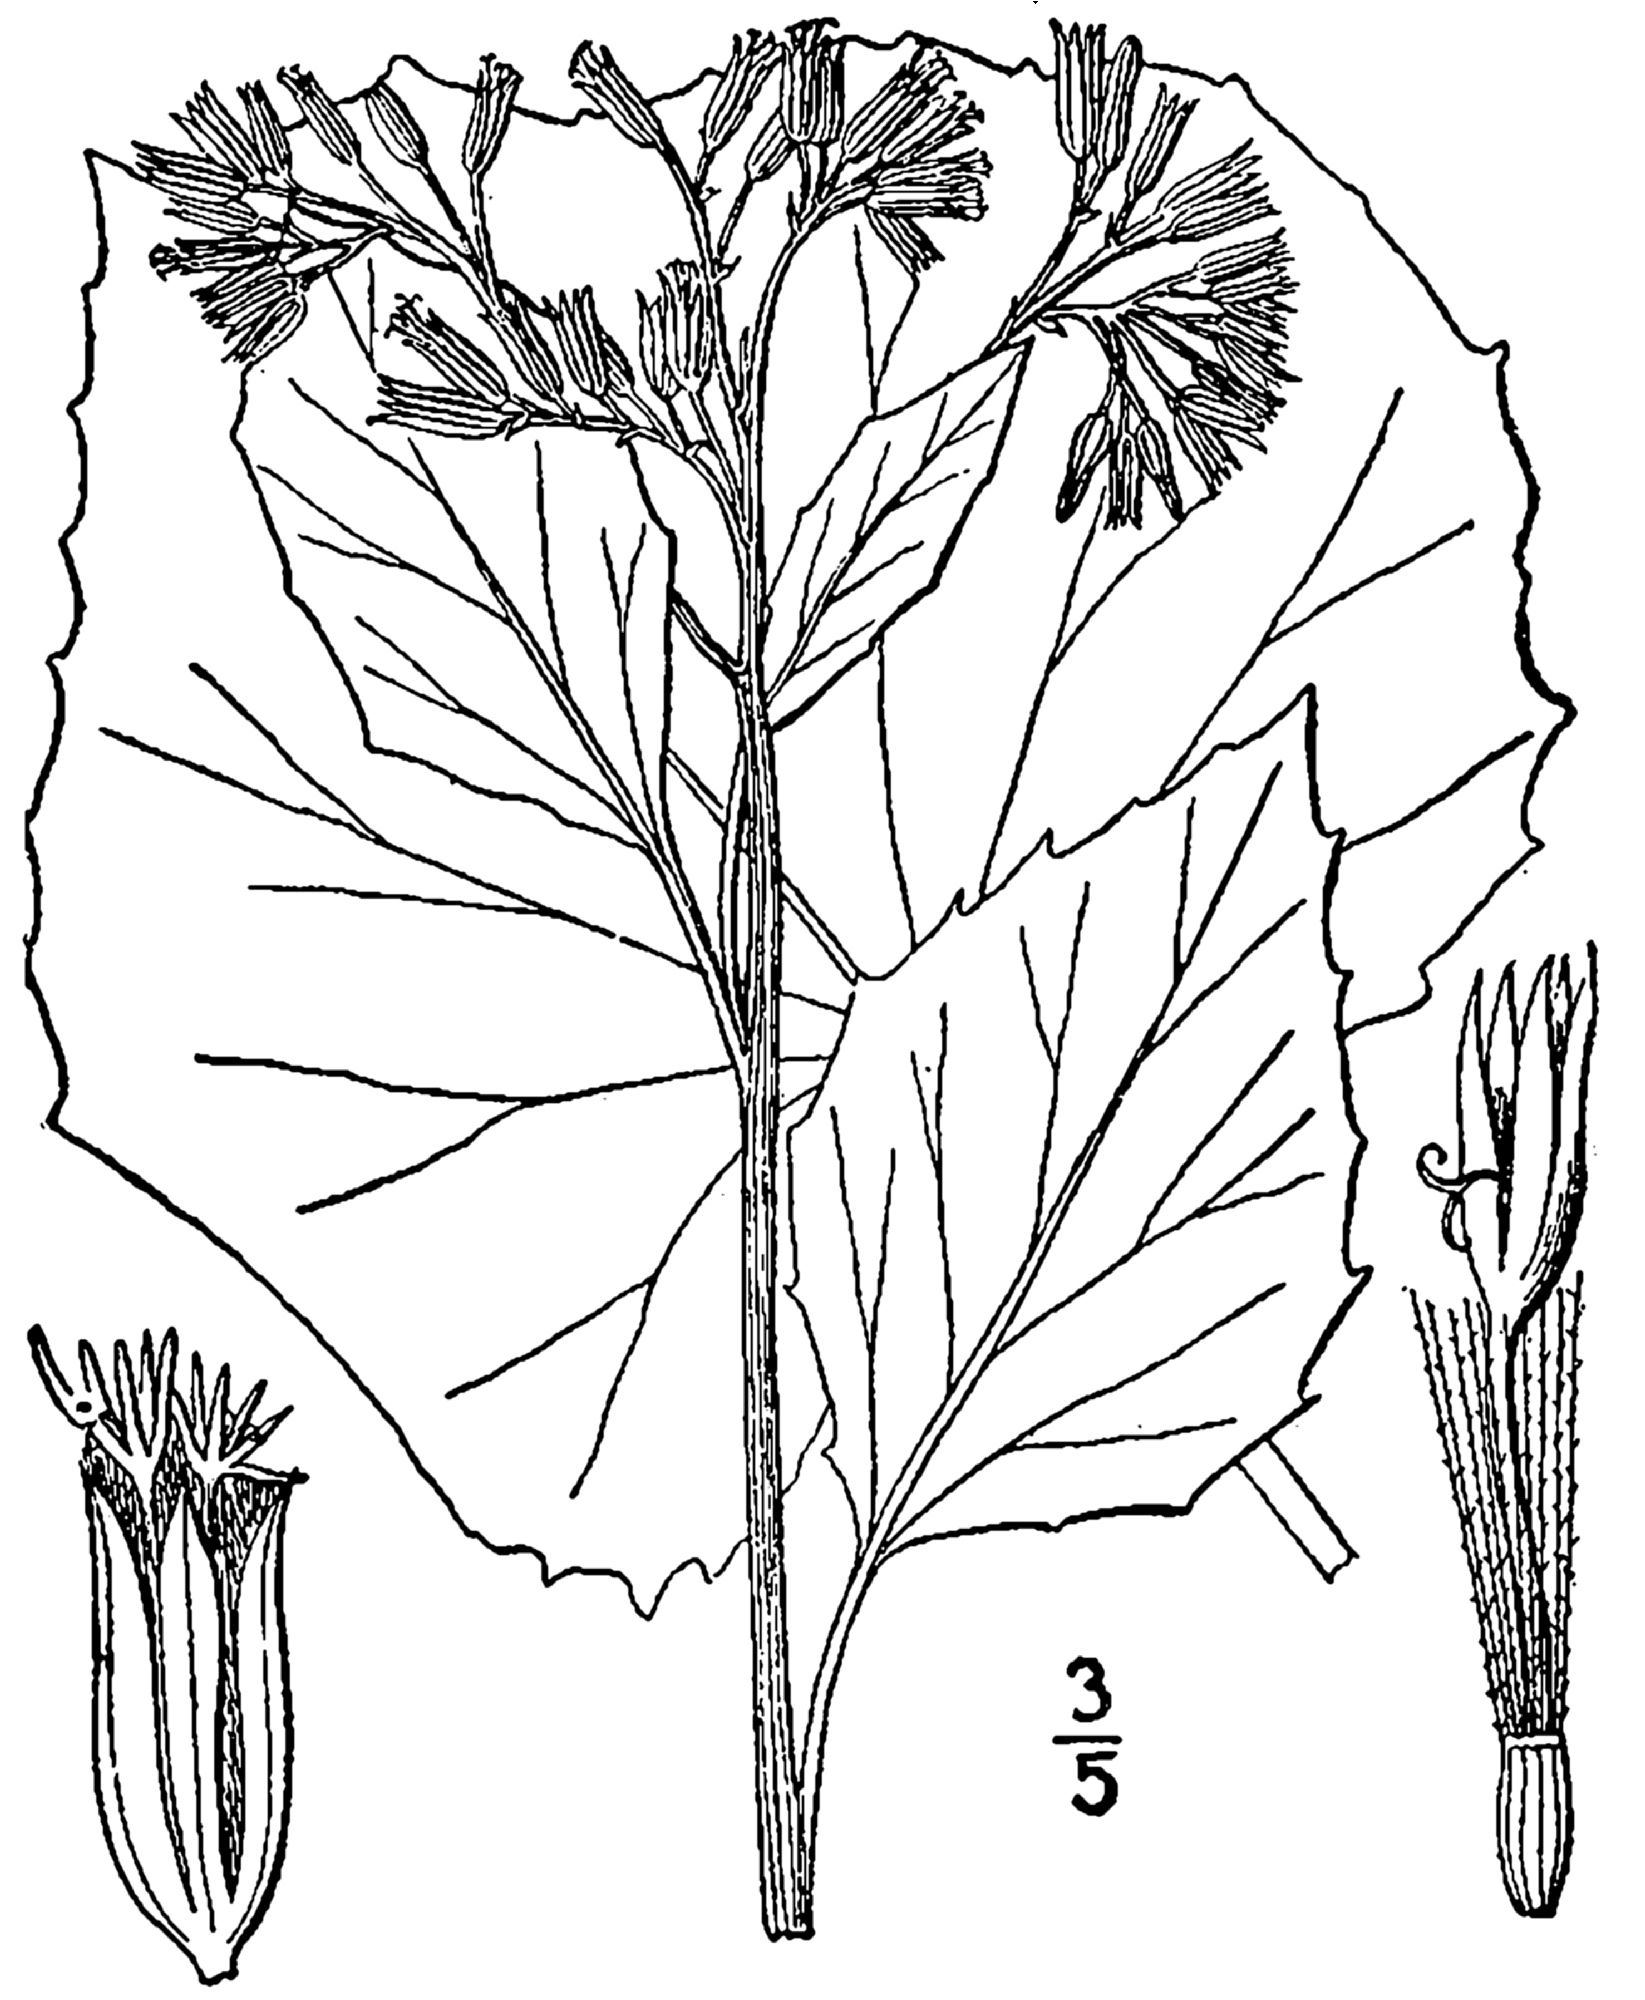 1913 Pale Indian Plantain illustration.